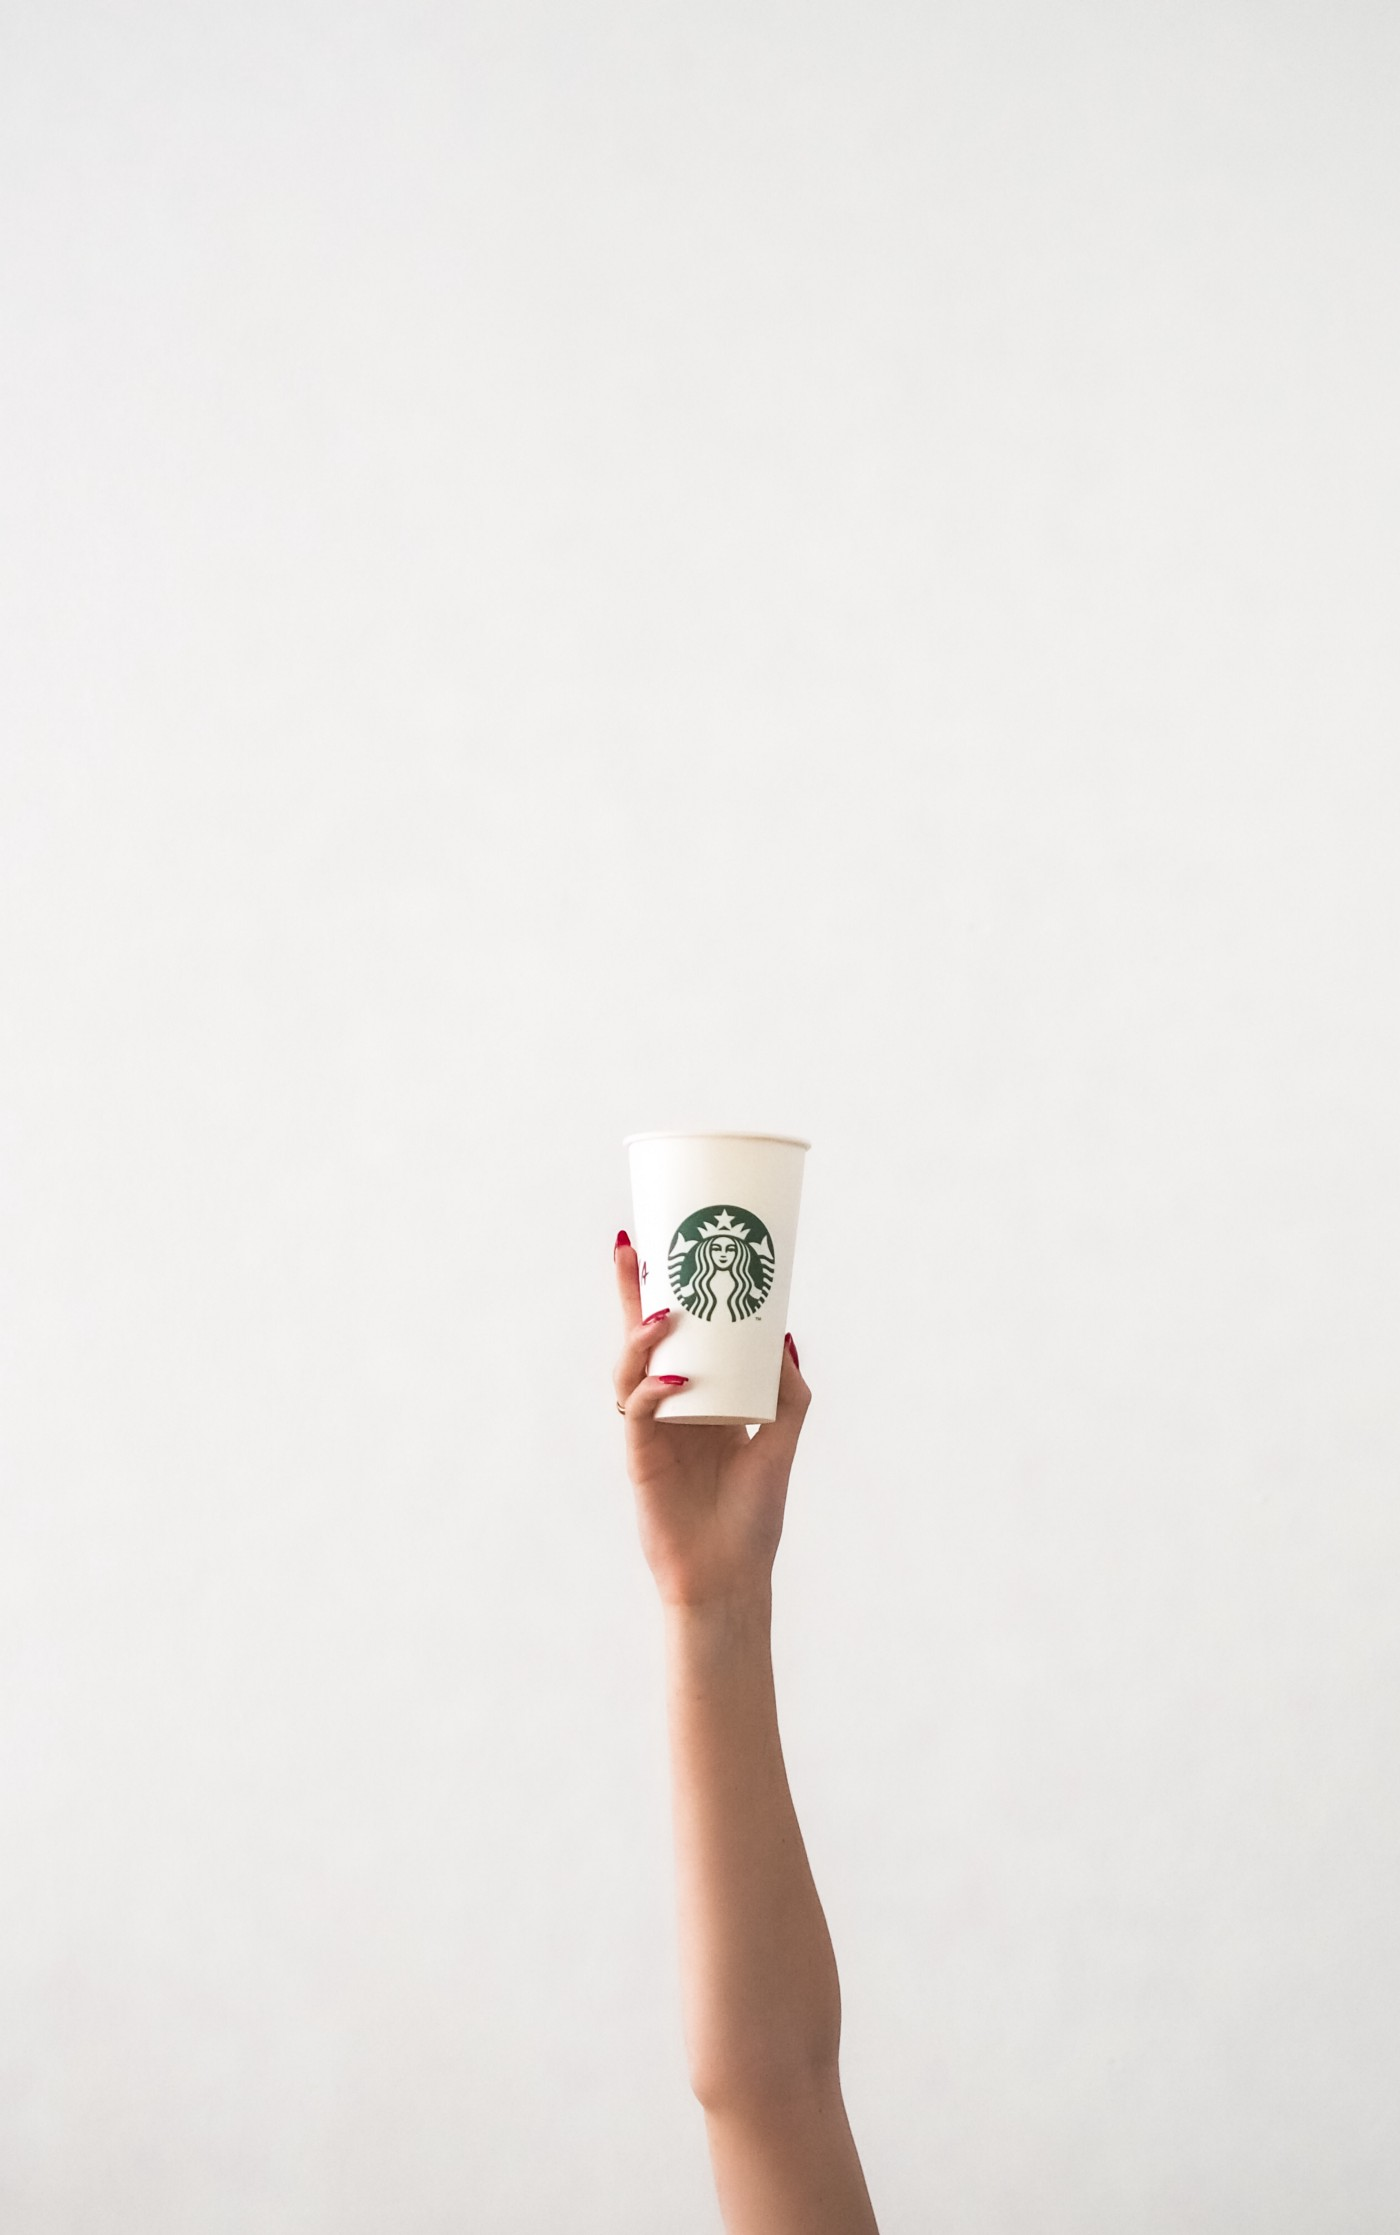 Brands like McDonalds & Starbucks use consistency to position themselves as reliable.